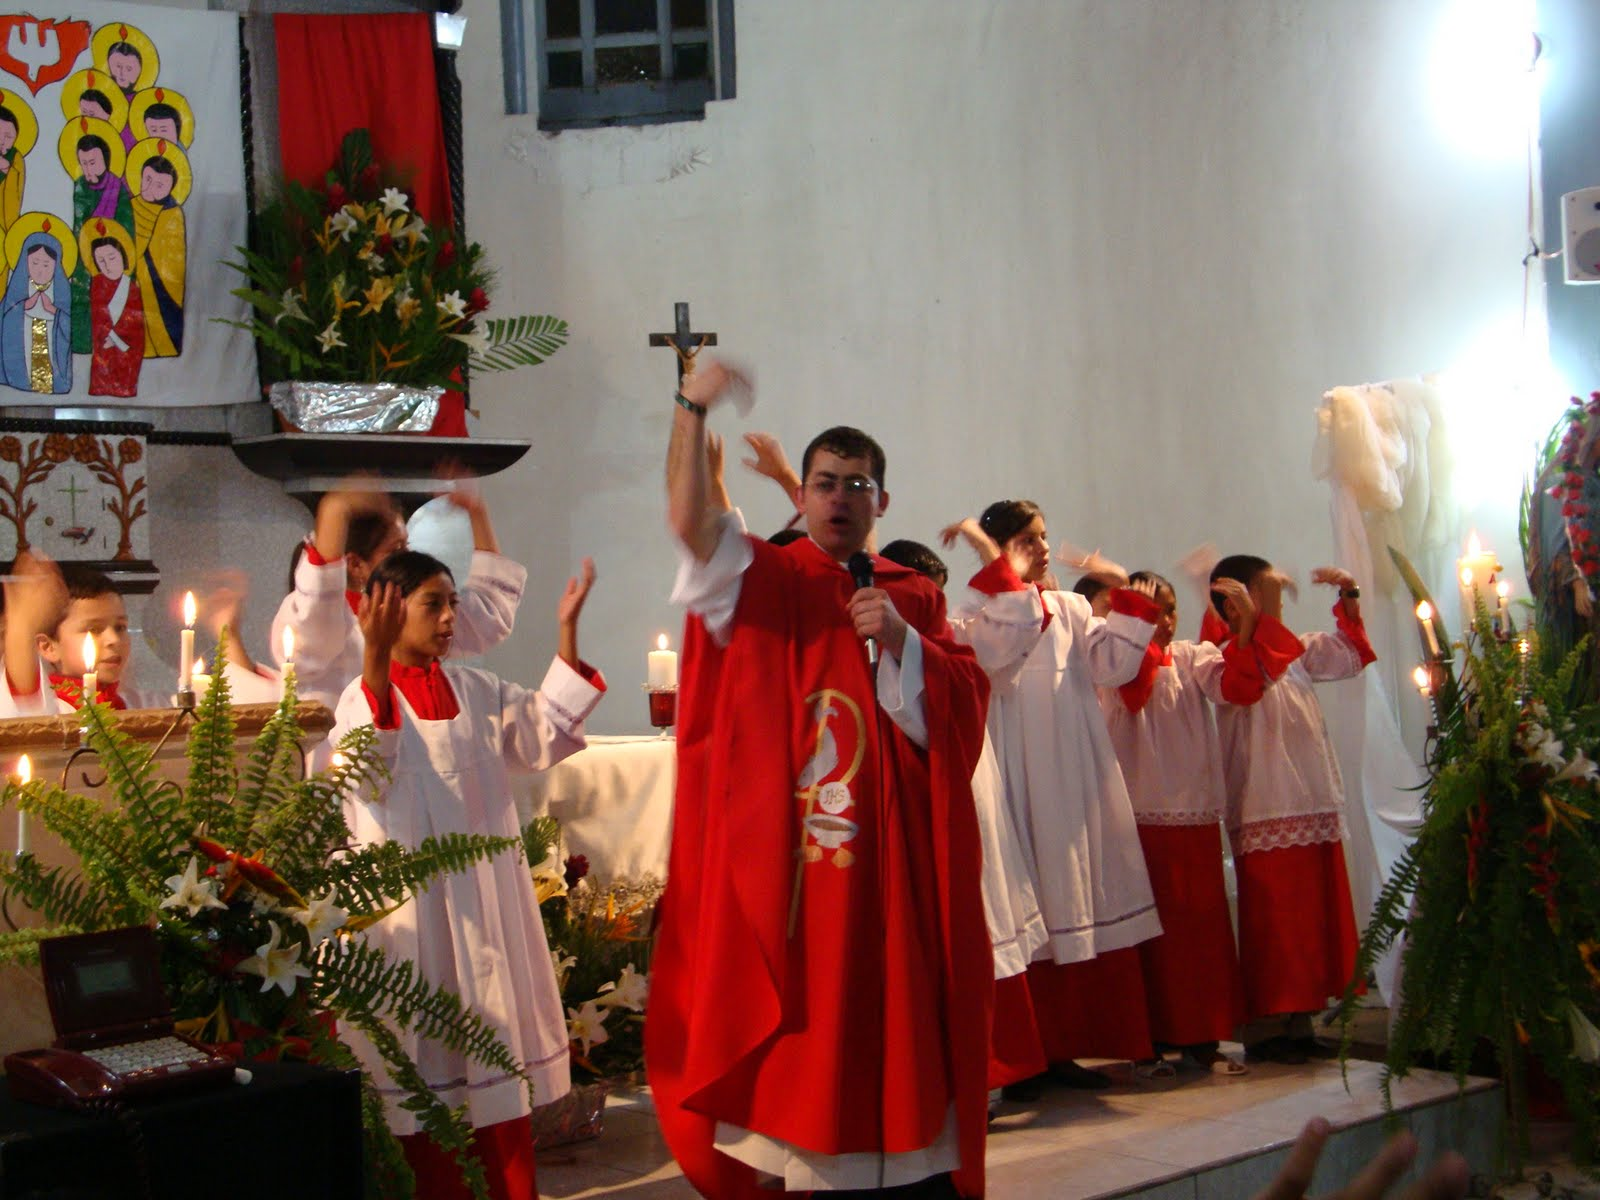 catholic singles in copan Join catholicmatchcom, the clear leader in online dating for catholics with more catholic singles than any other catholic dating site member sign in honduran conservative catholic women.